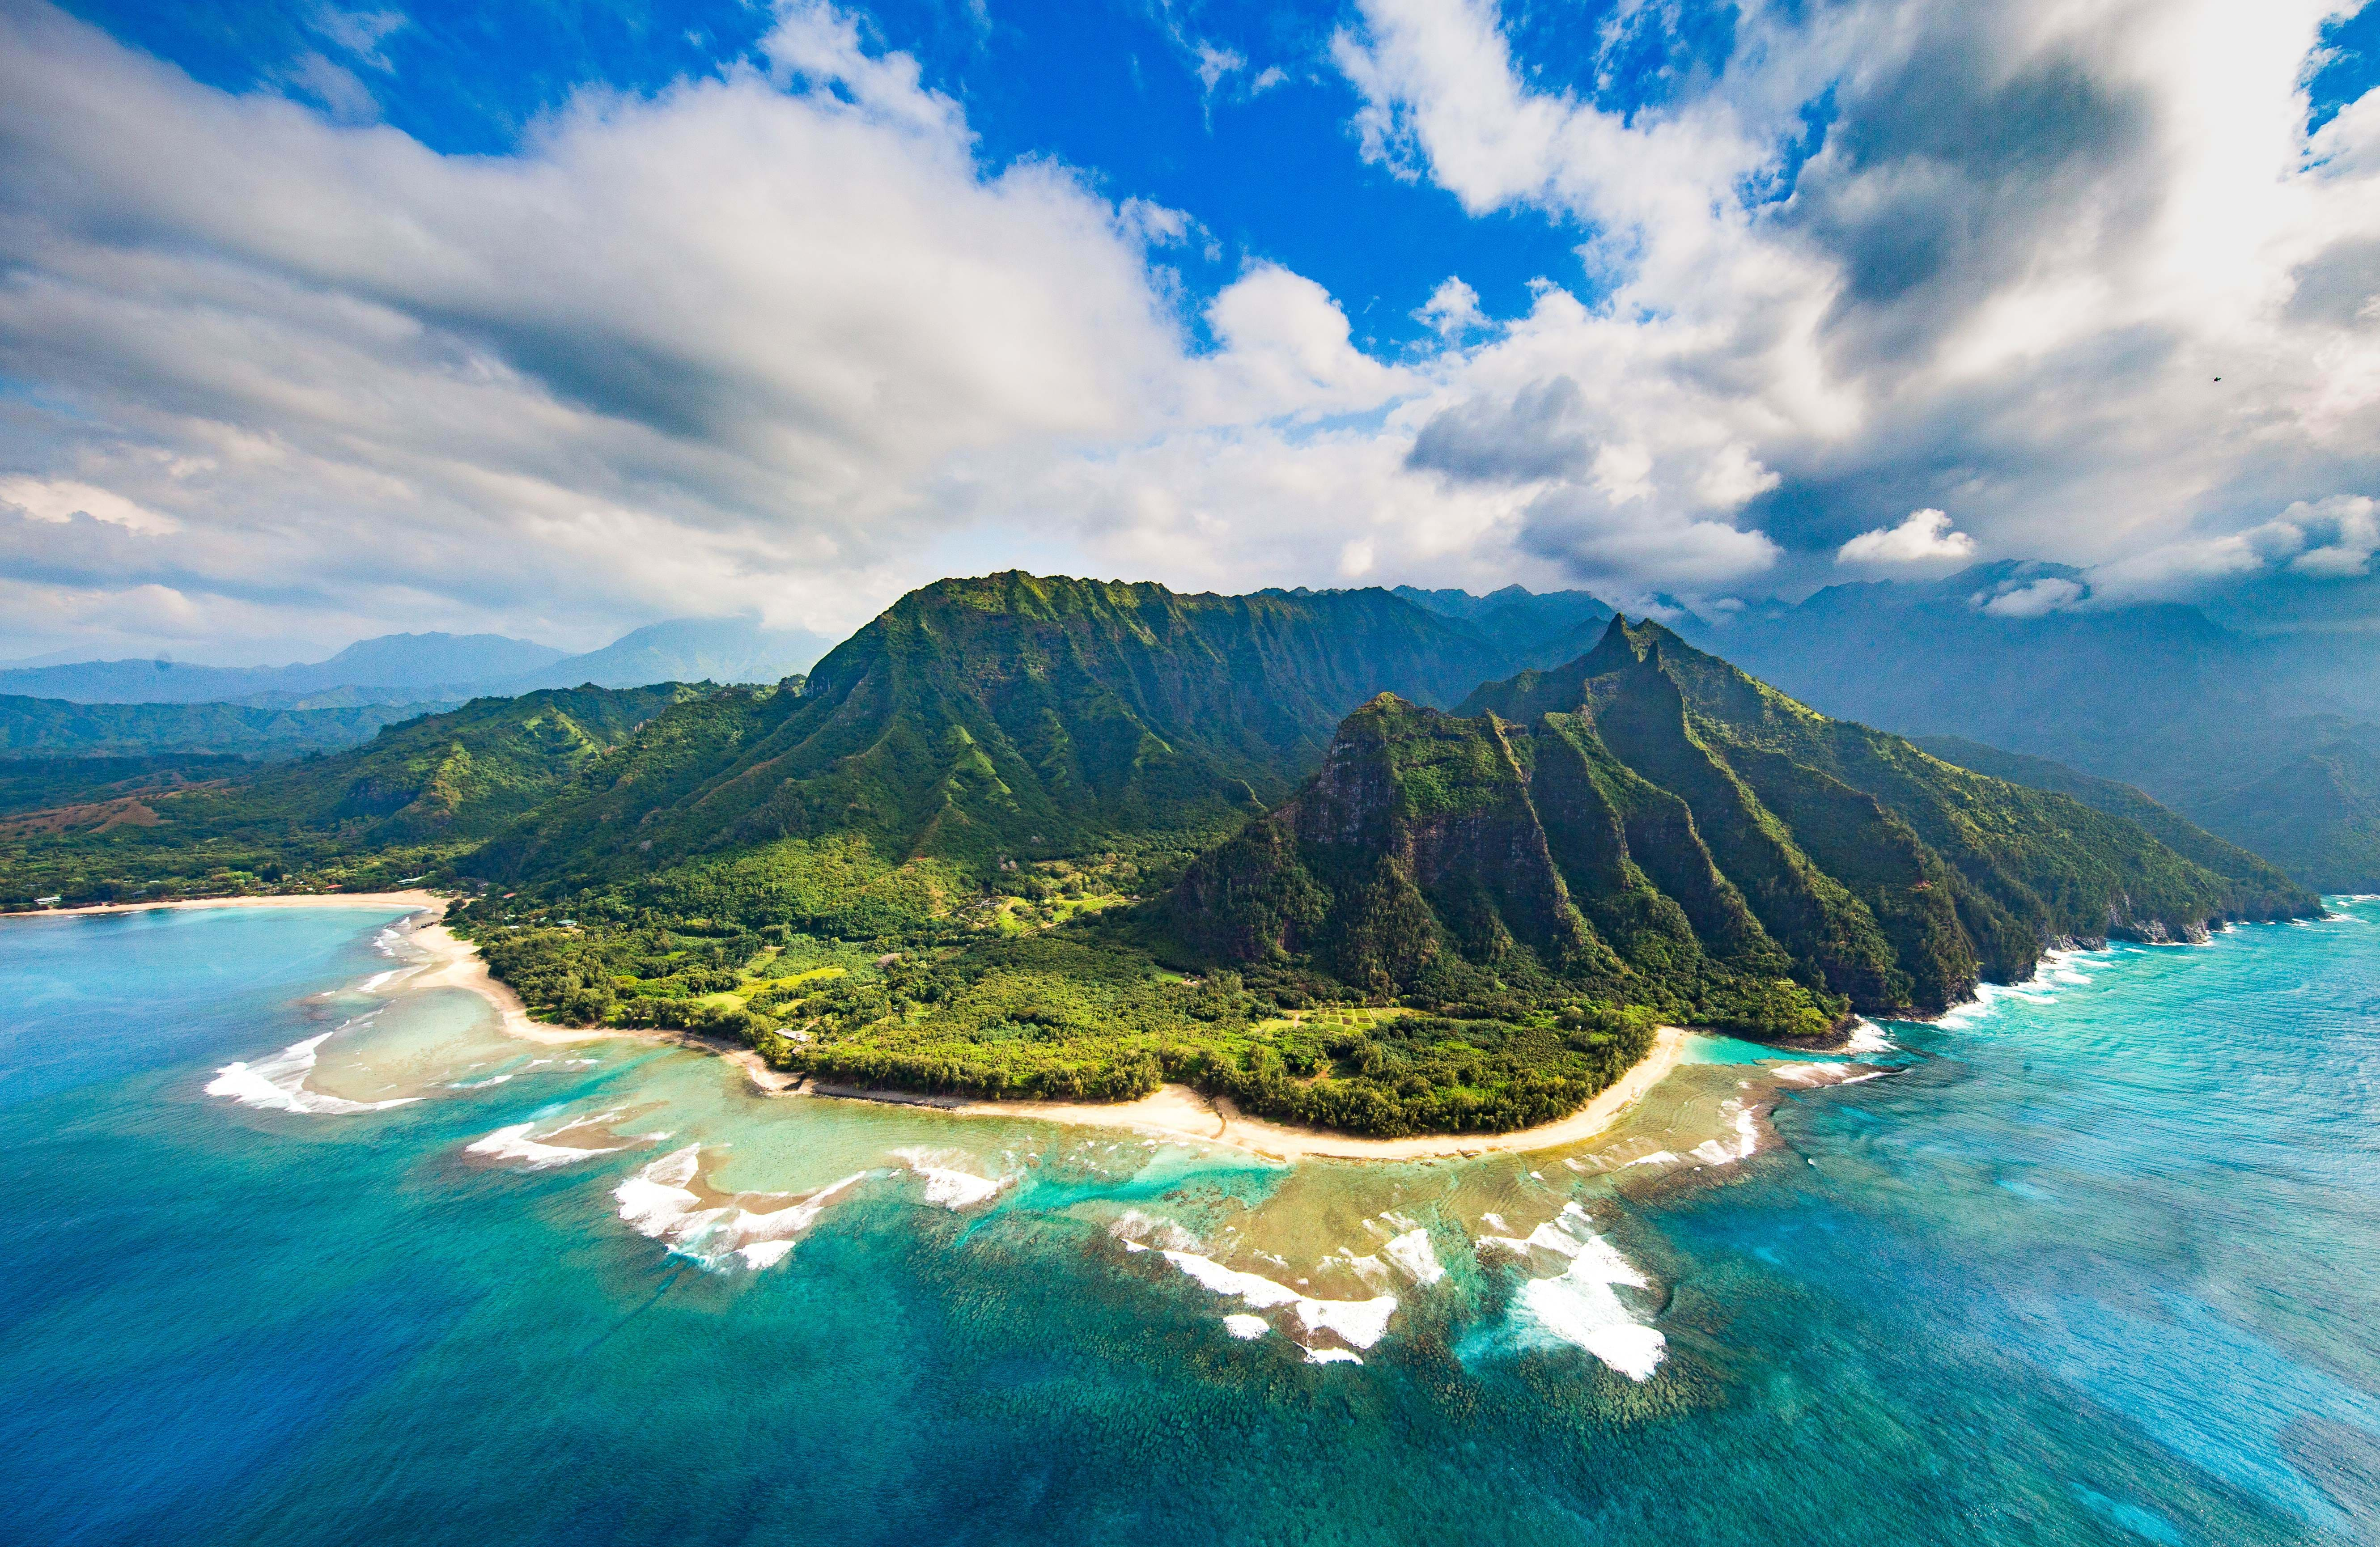 hawaii-island-landscape-cover